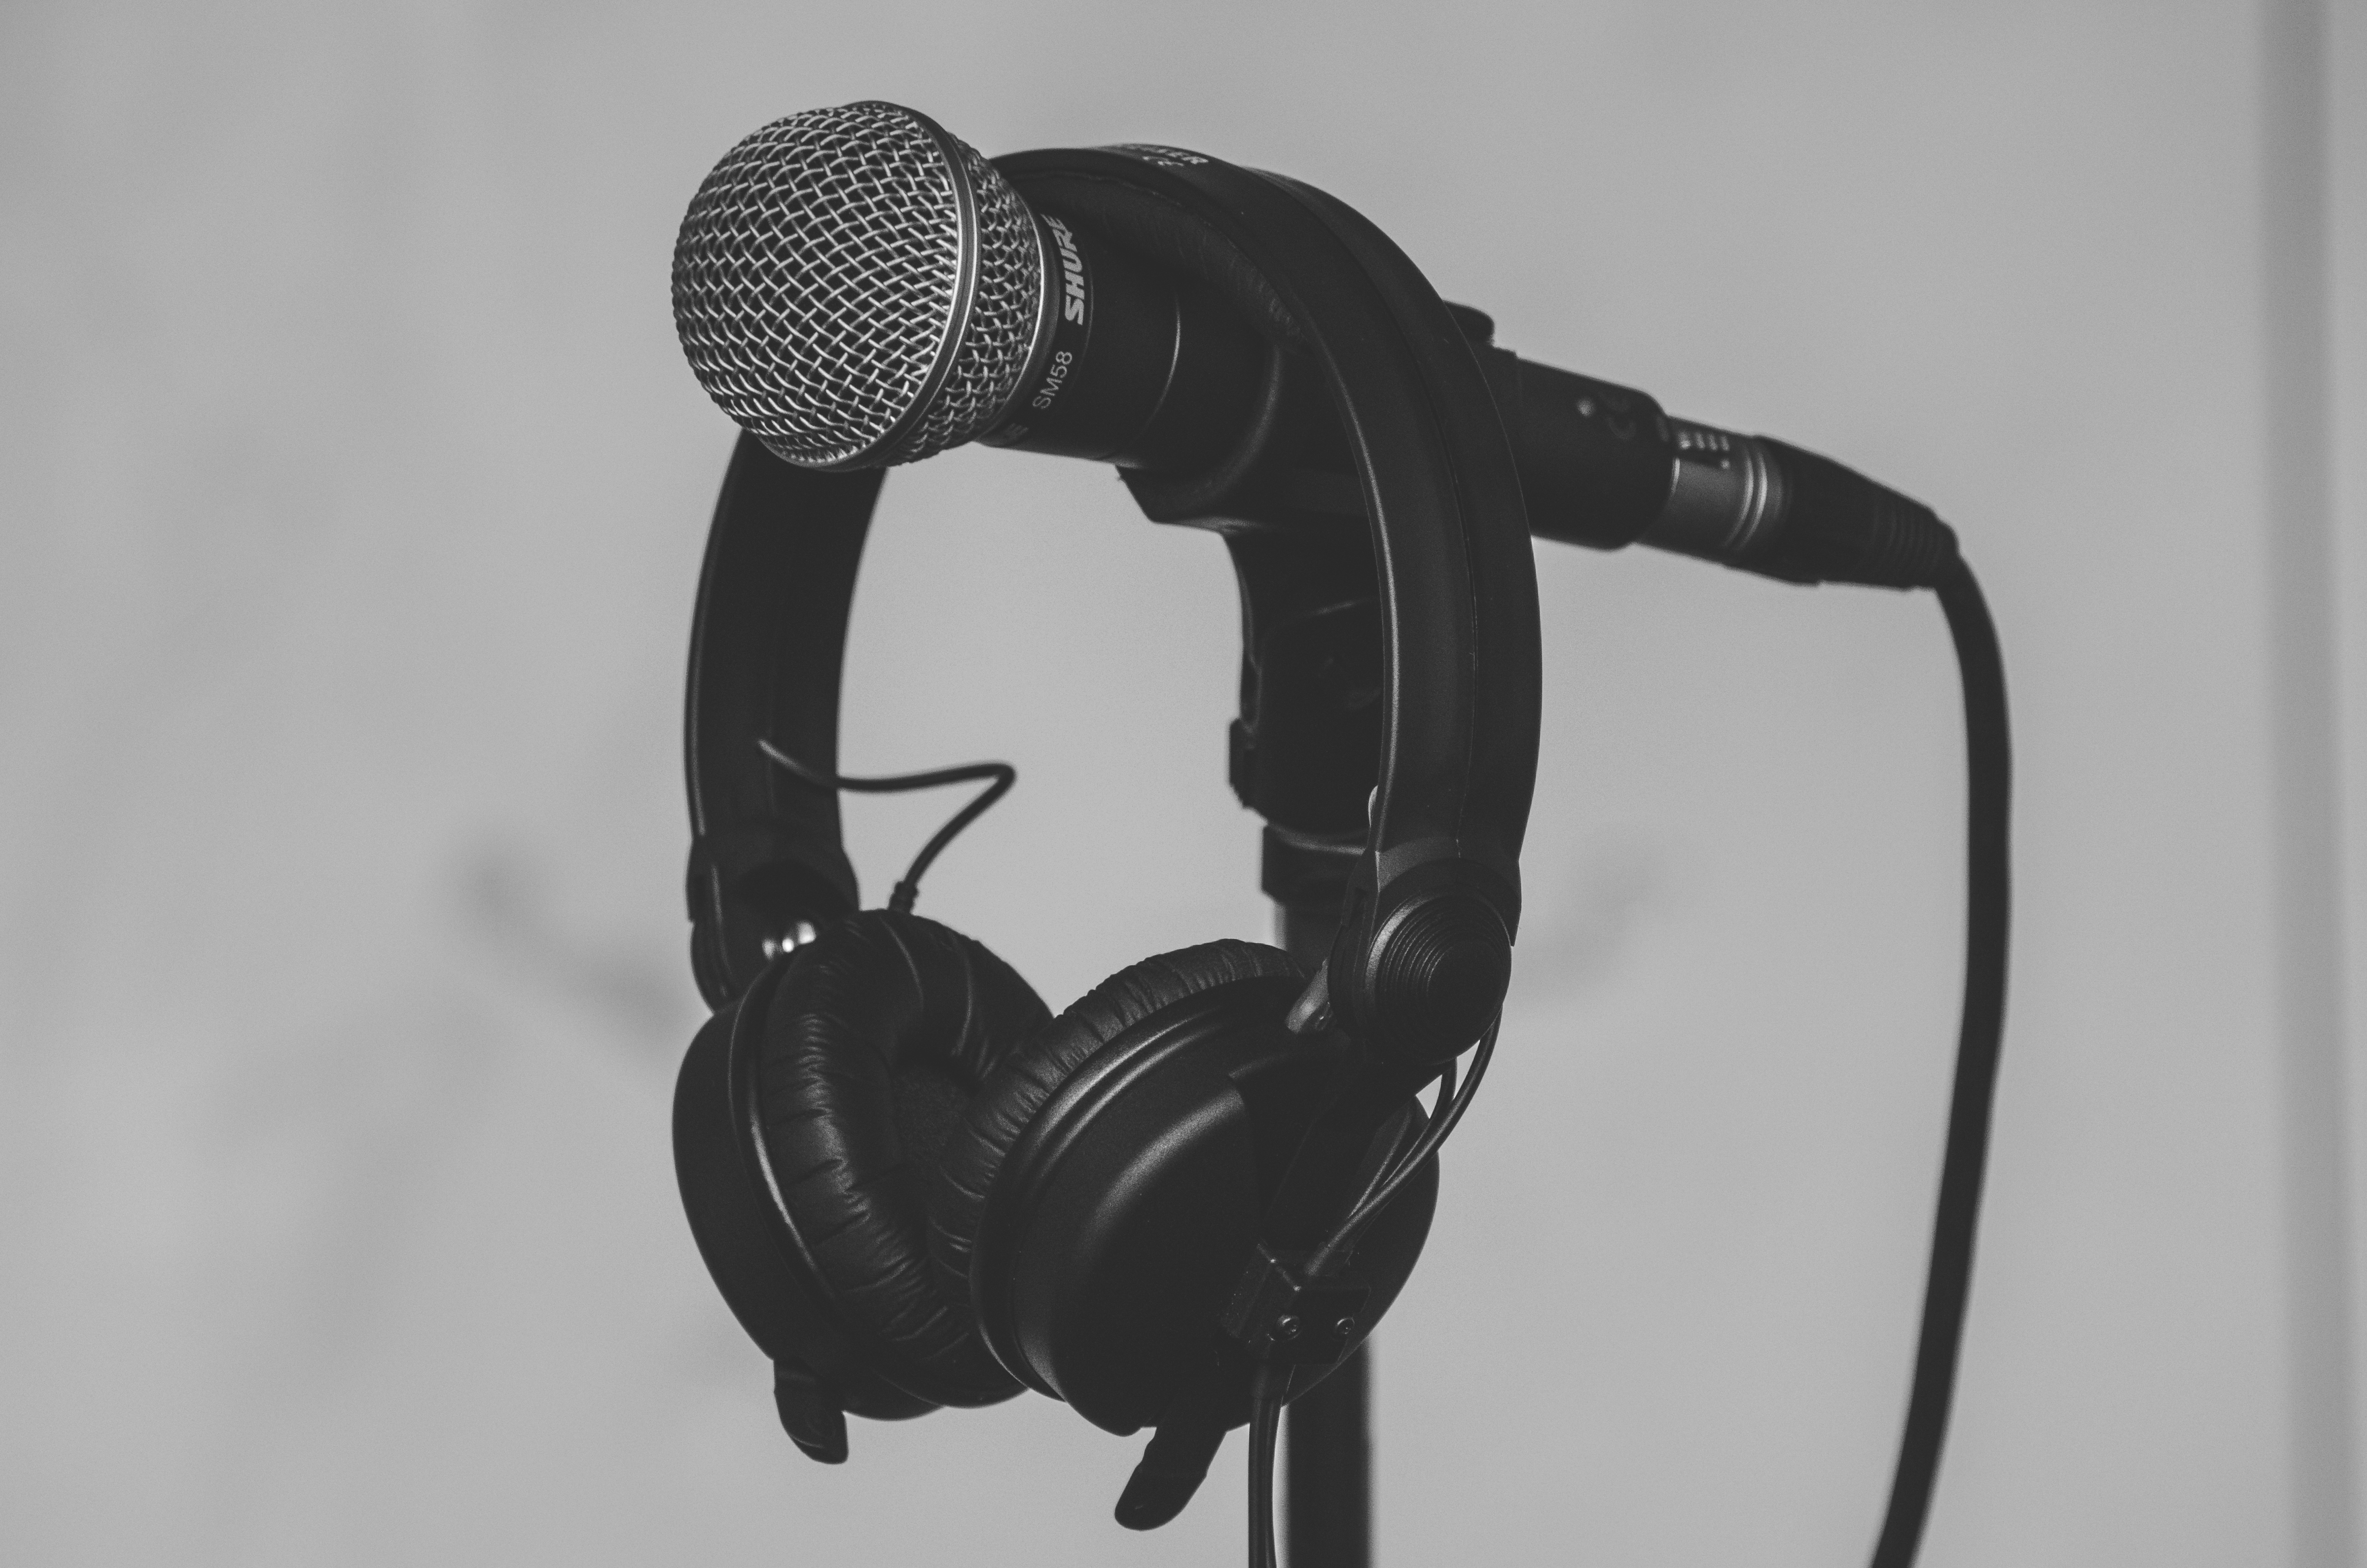 A microphone and a pair of headphones